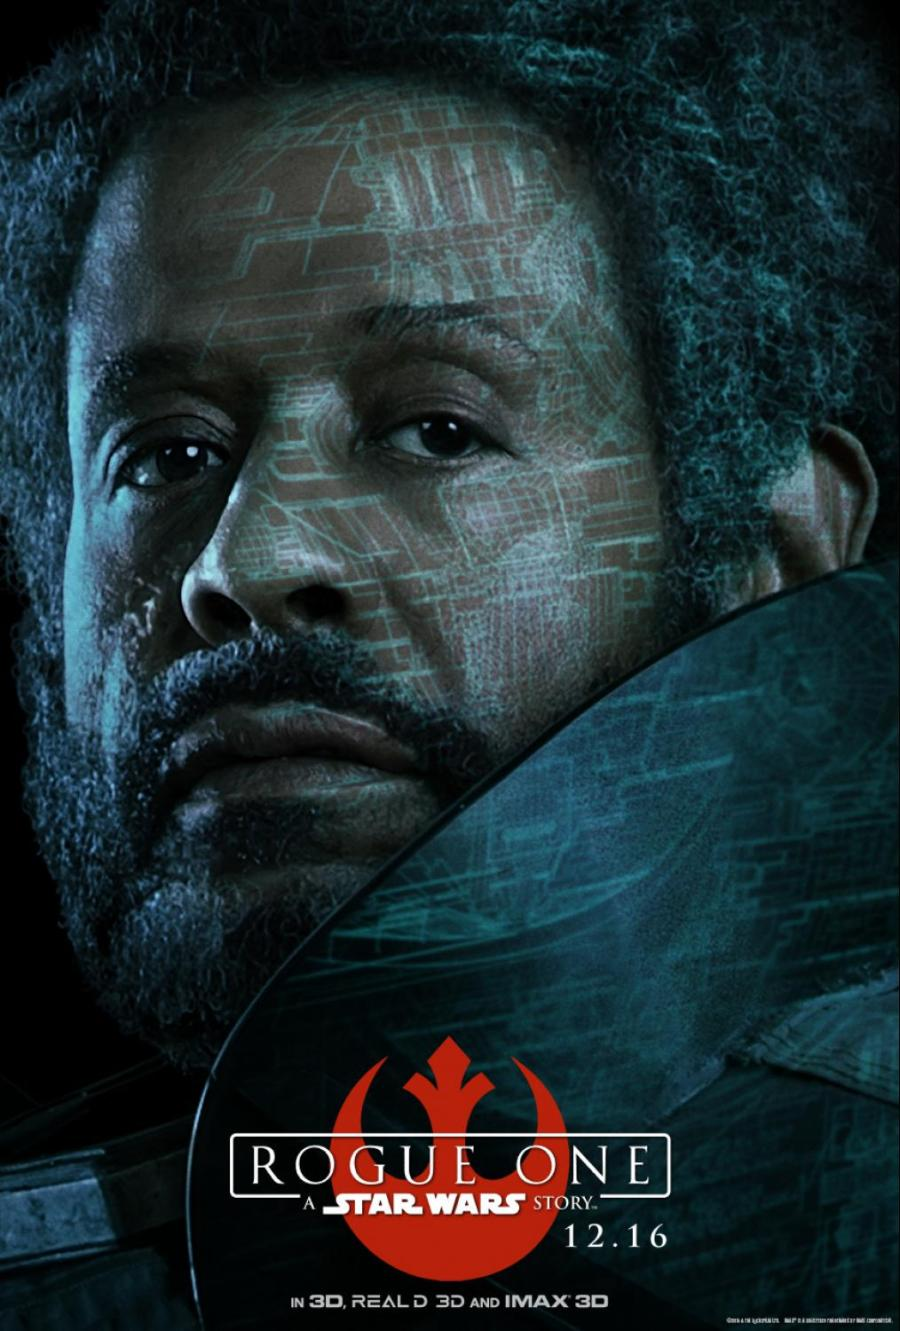 Saw Gerrera - ROGUE ONE: A STAR WARS STORY